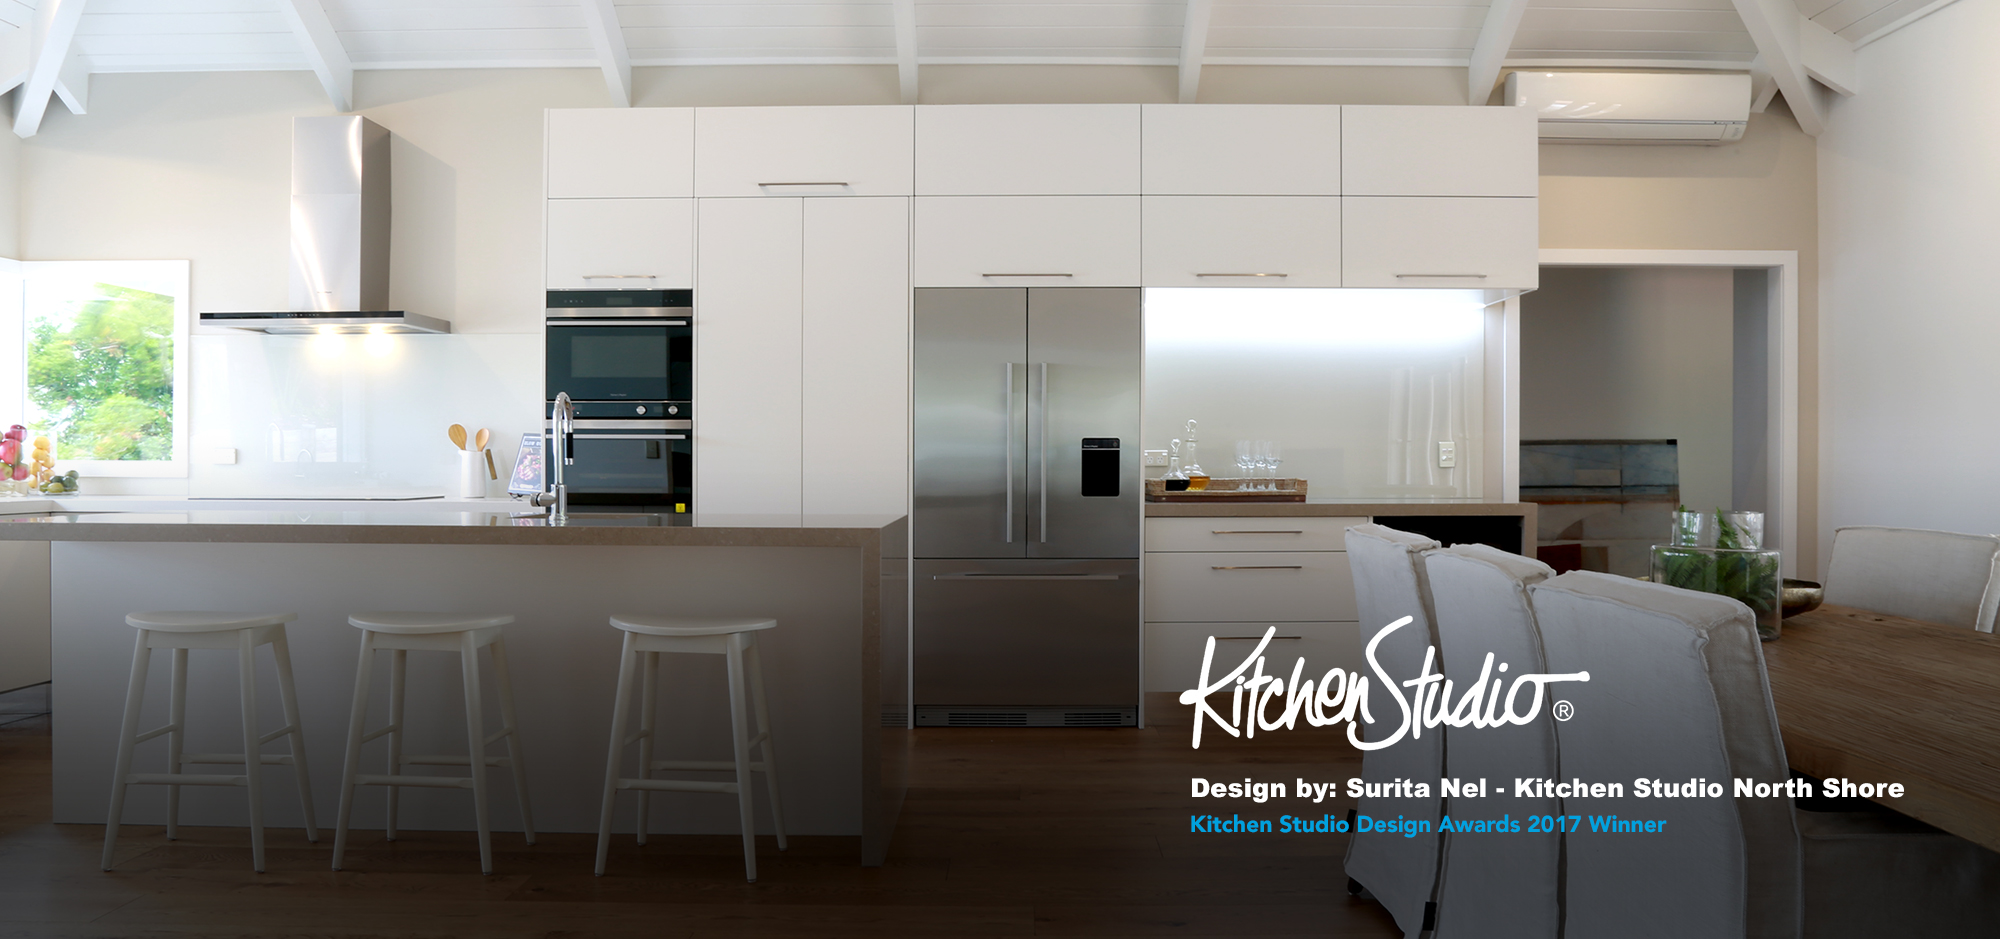 New kitchen studio - because life happens in the kitchen, weu0027ll make it happen yvvegig